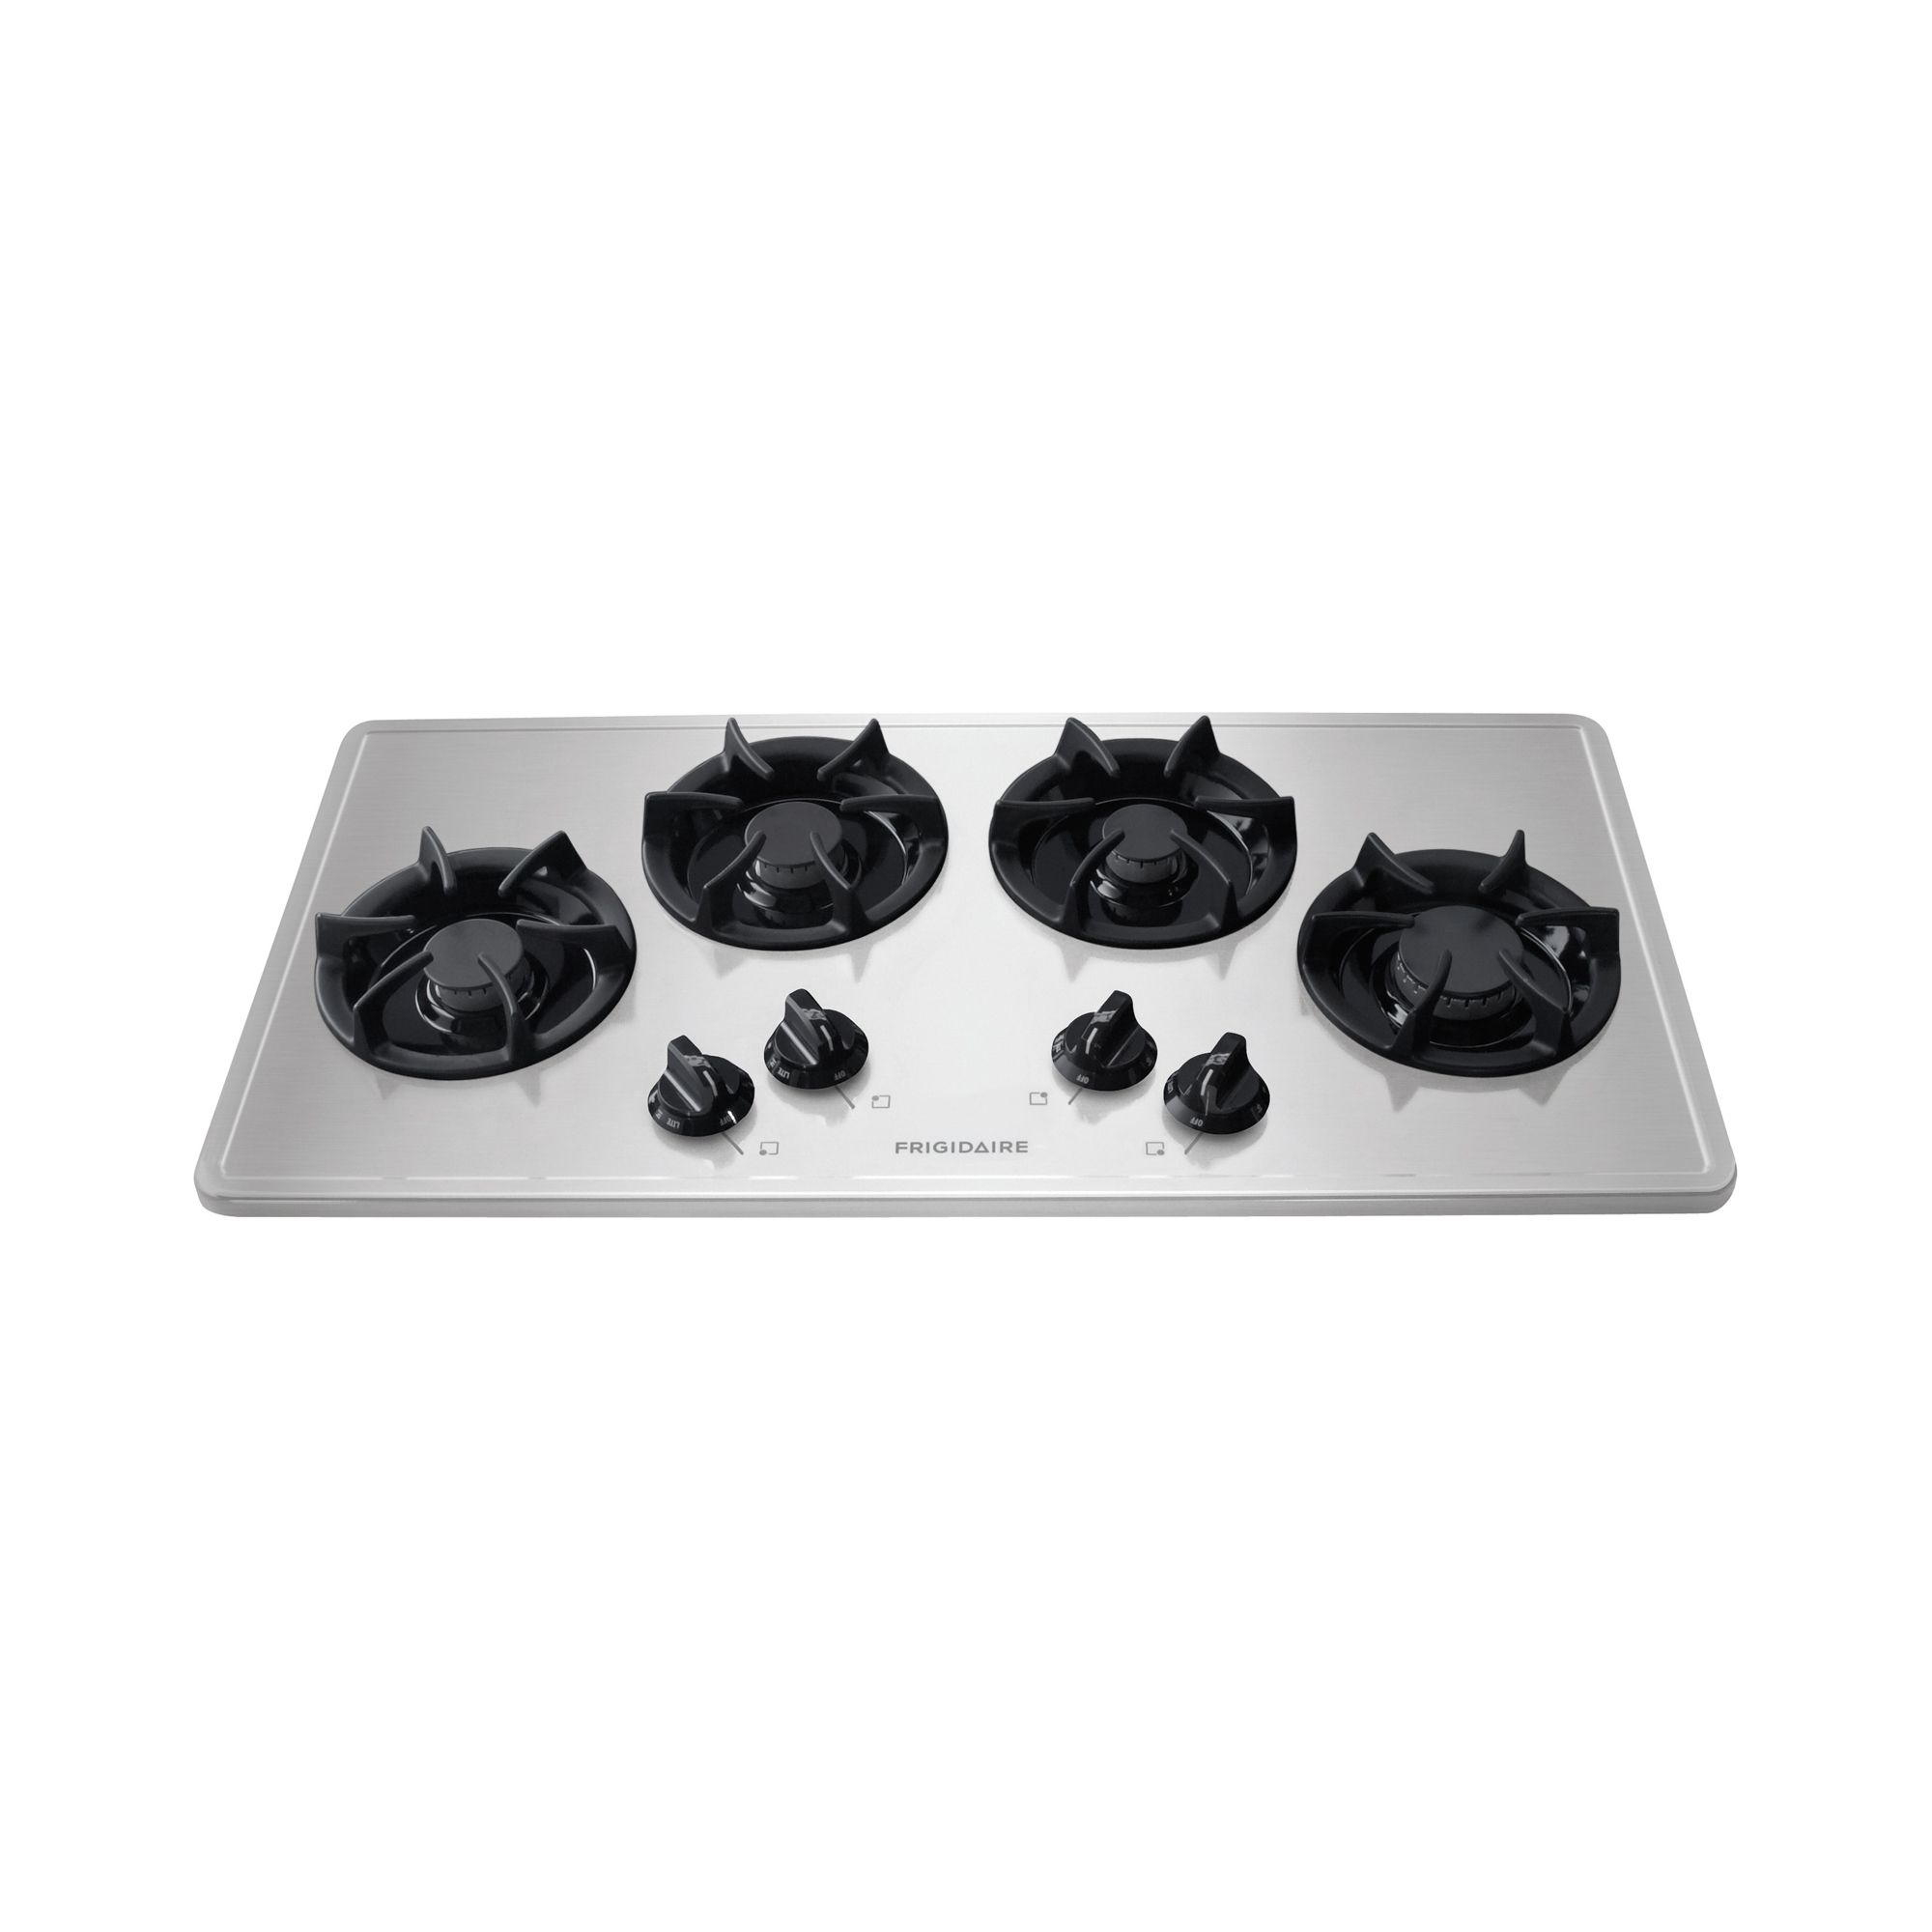 "Frigidaire 36"" Sealed Burner Gas Cooktop"